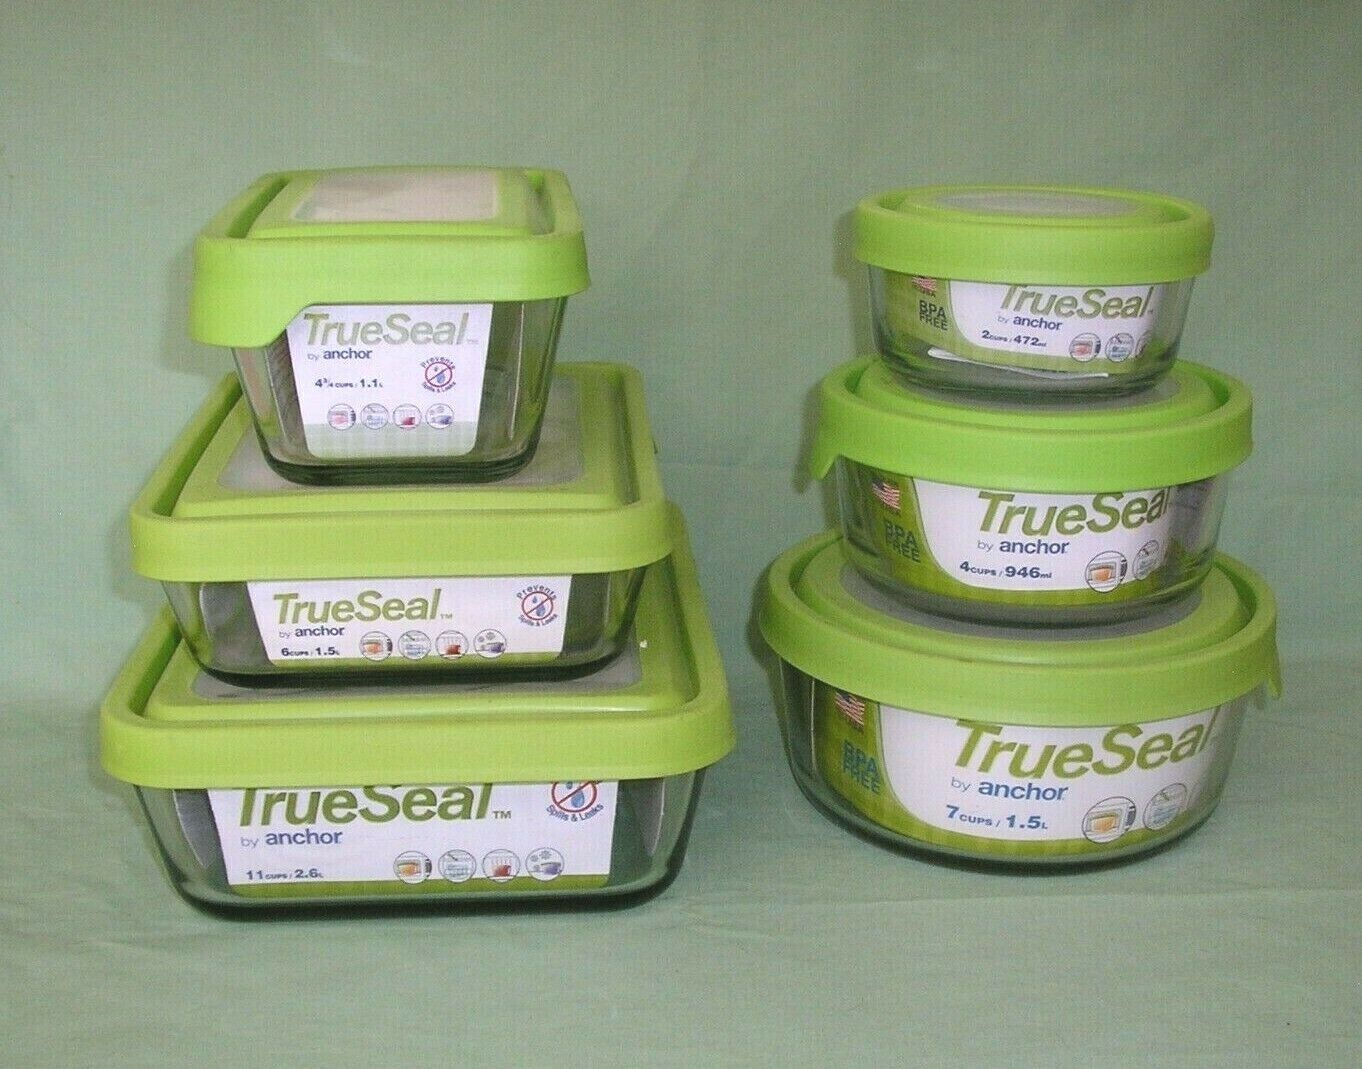 TrueSeal by Anchor Hocking Glass Container with Lid in Lime